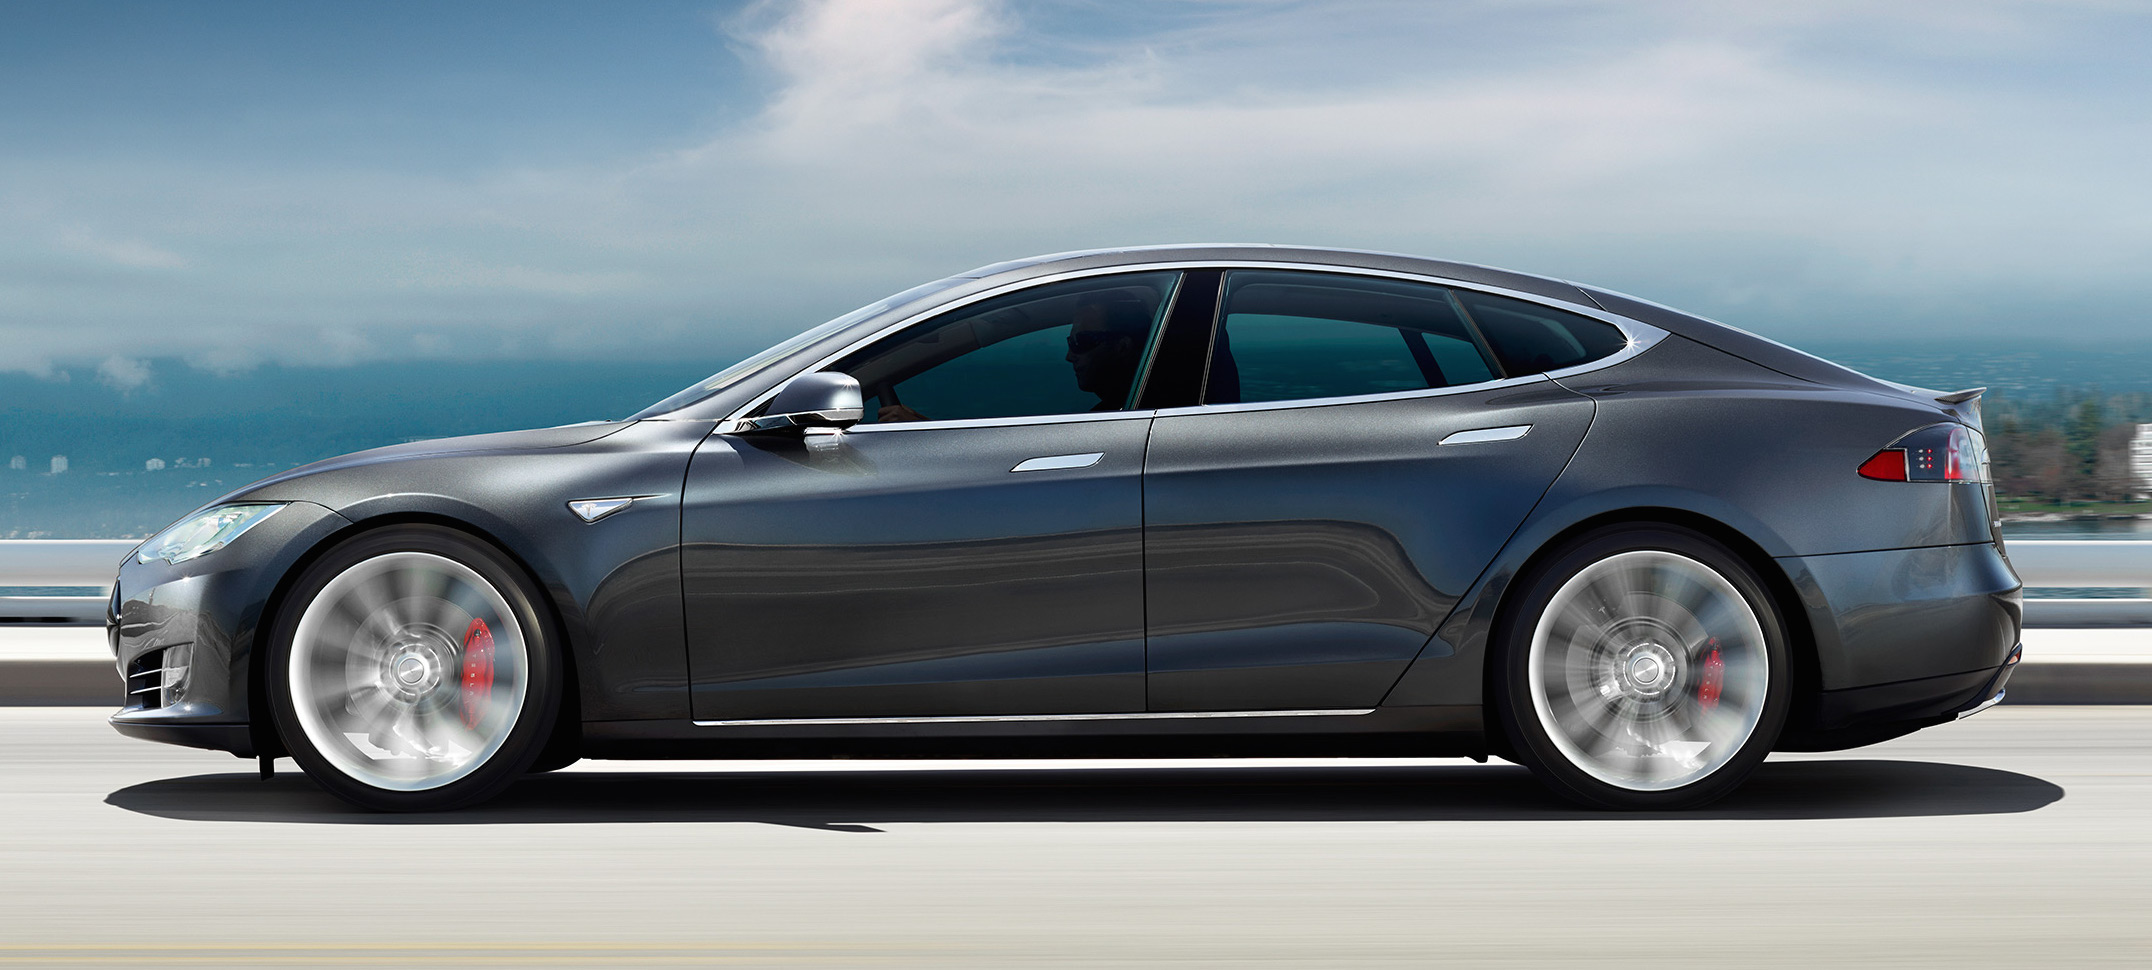 Tesla Motors Unveils Preorder Program For Their More Affordable Model 3 Electric Car